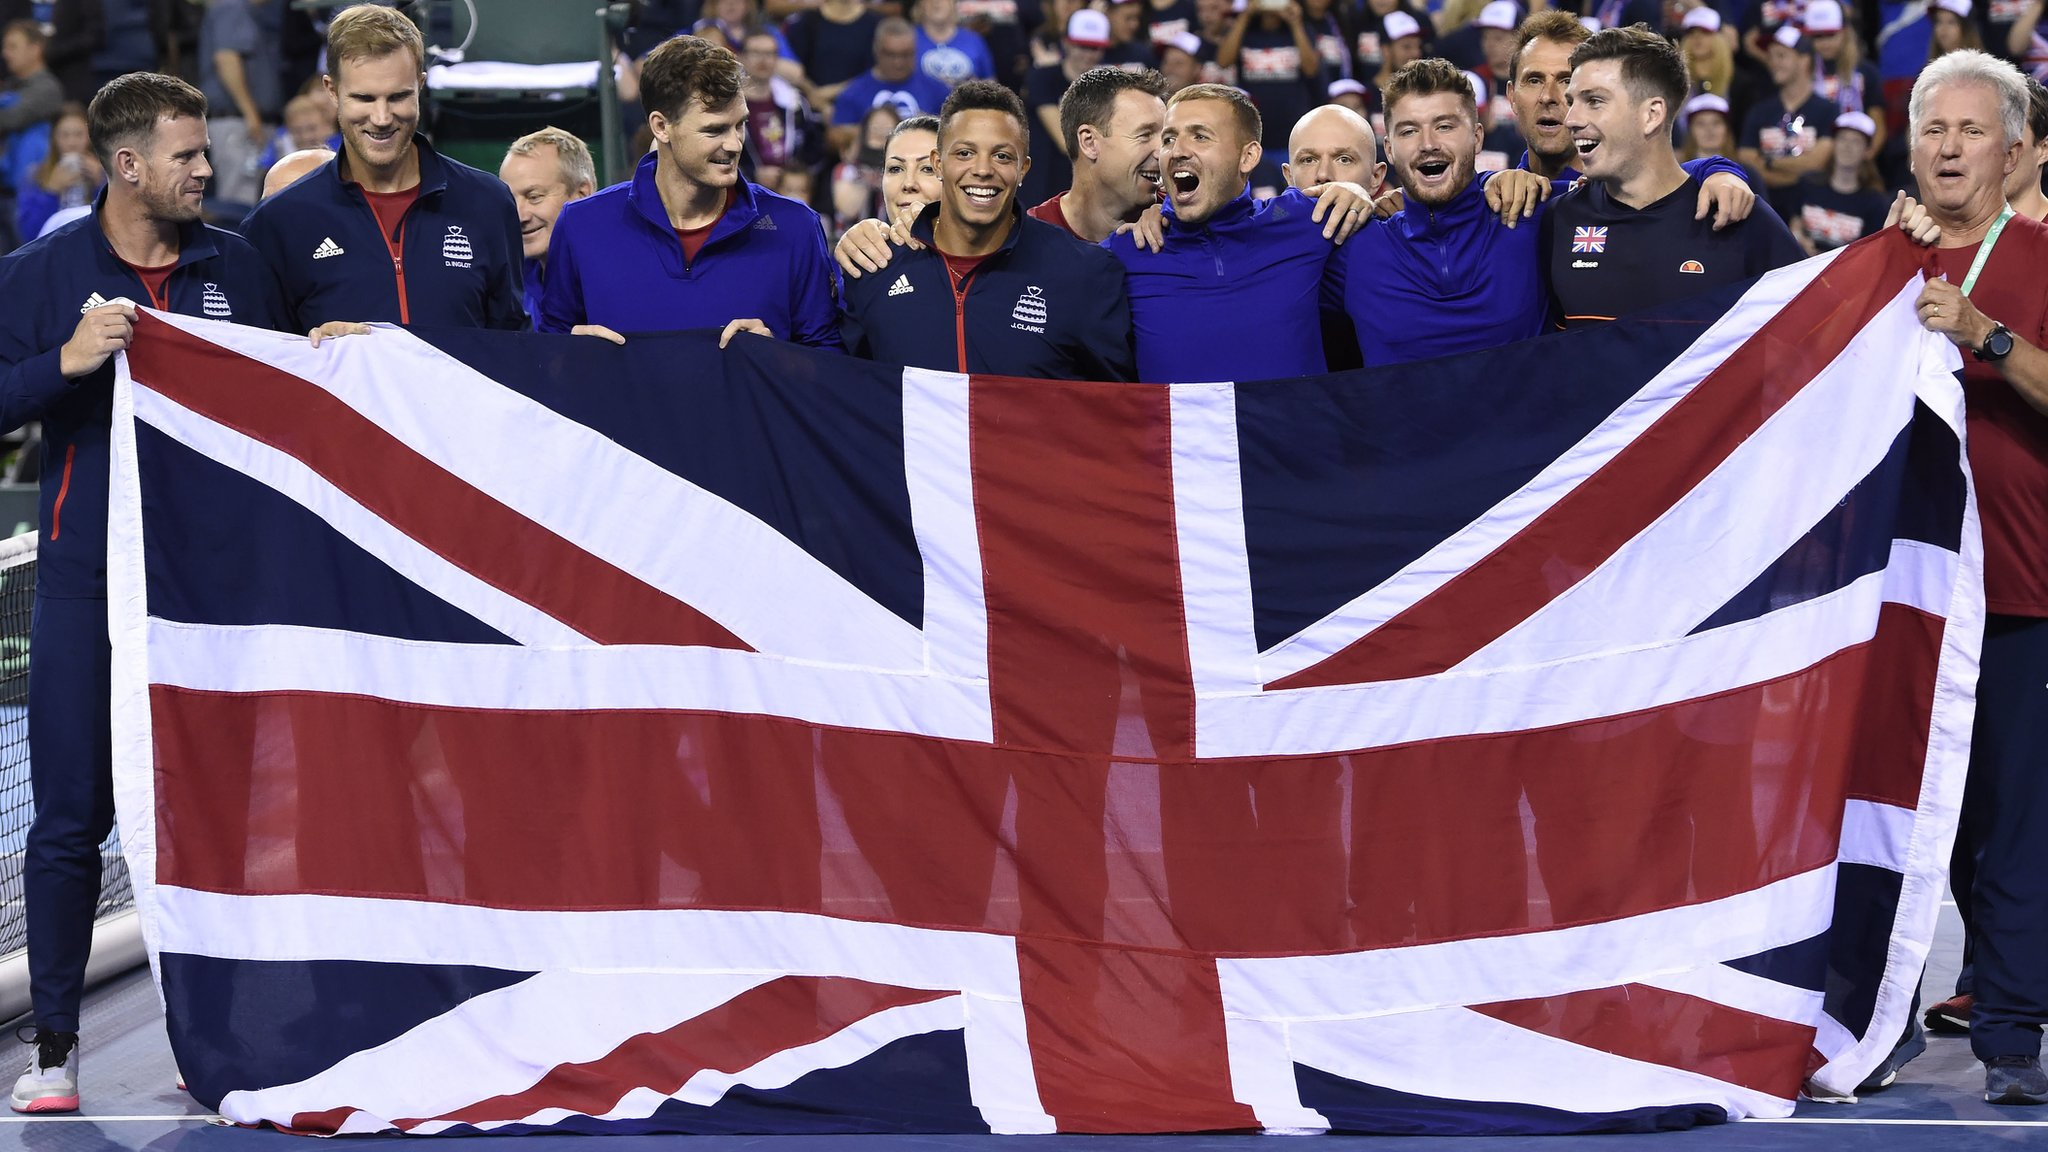 Davis Cup: Great Britain 'strong candidate' for wildcard - captain Leon Smith